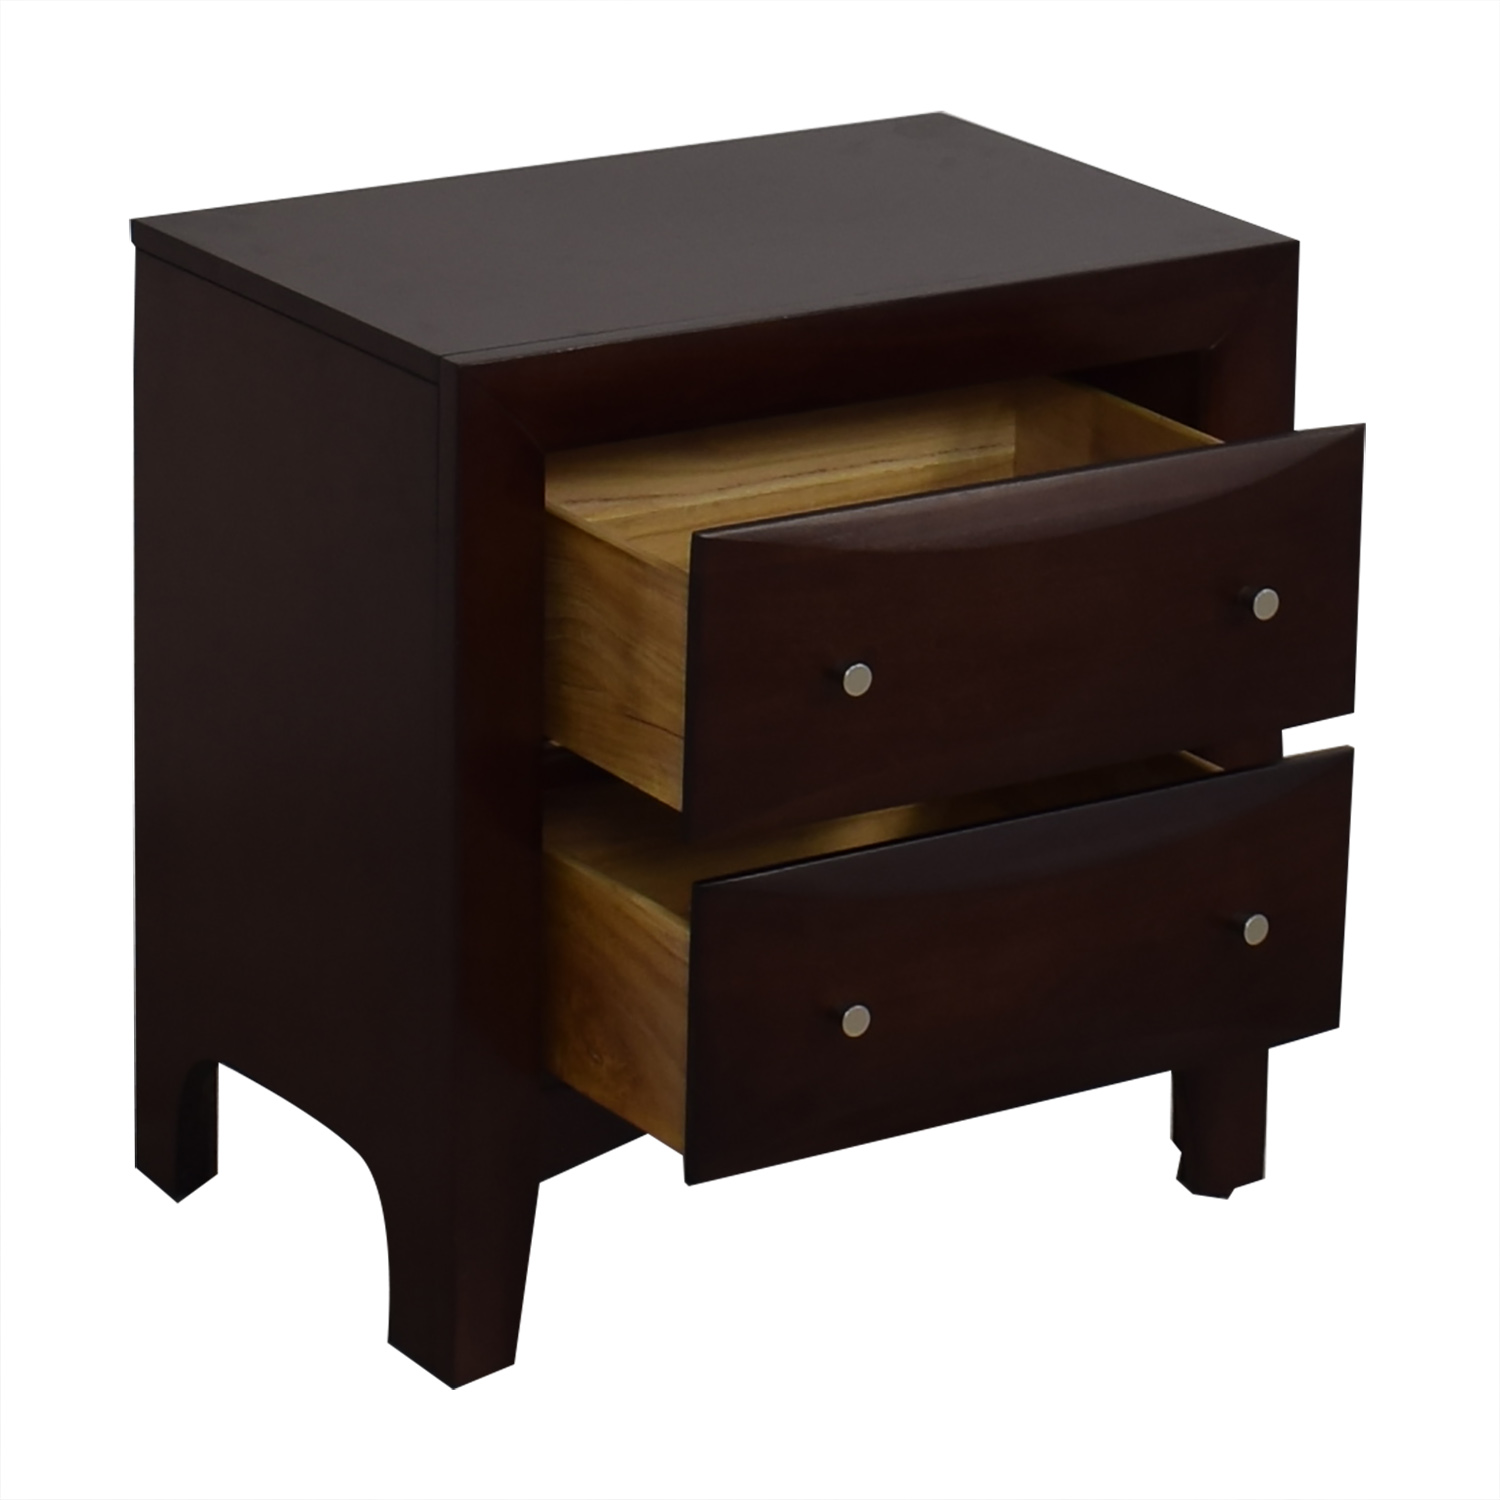 Raymour & Flanigan Raymour & Flanigan Two-Drawer End Table used